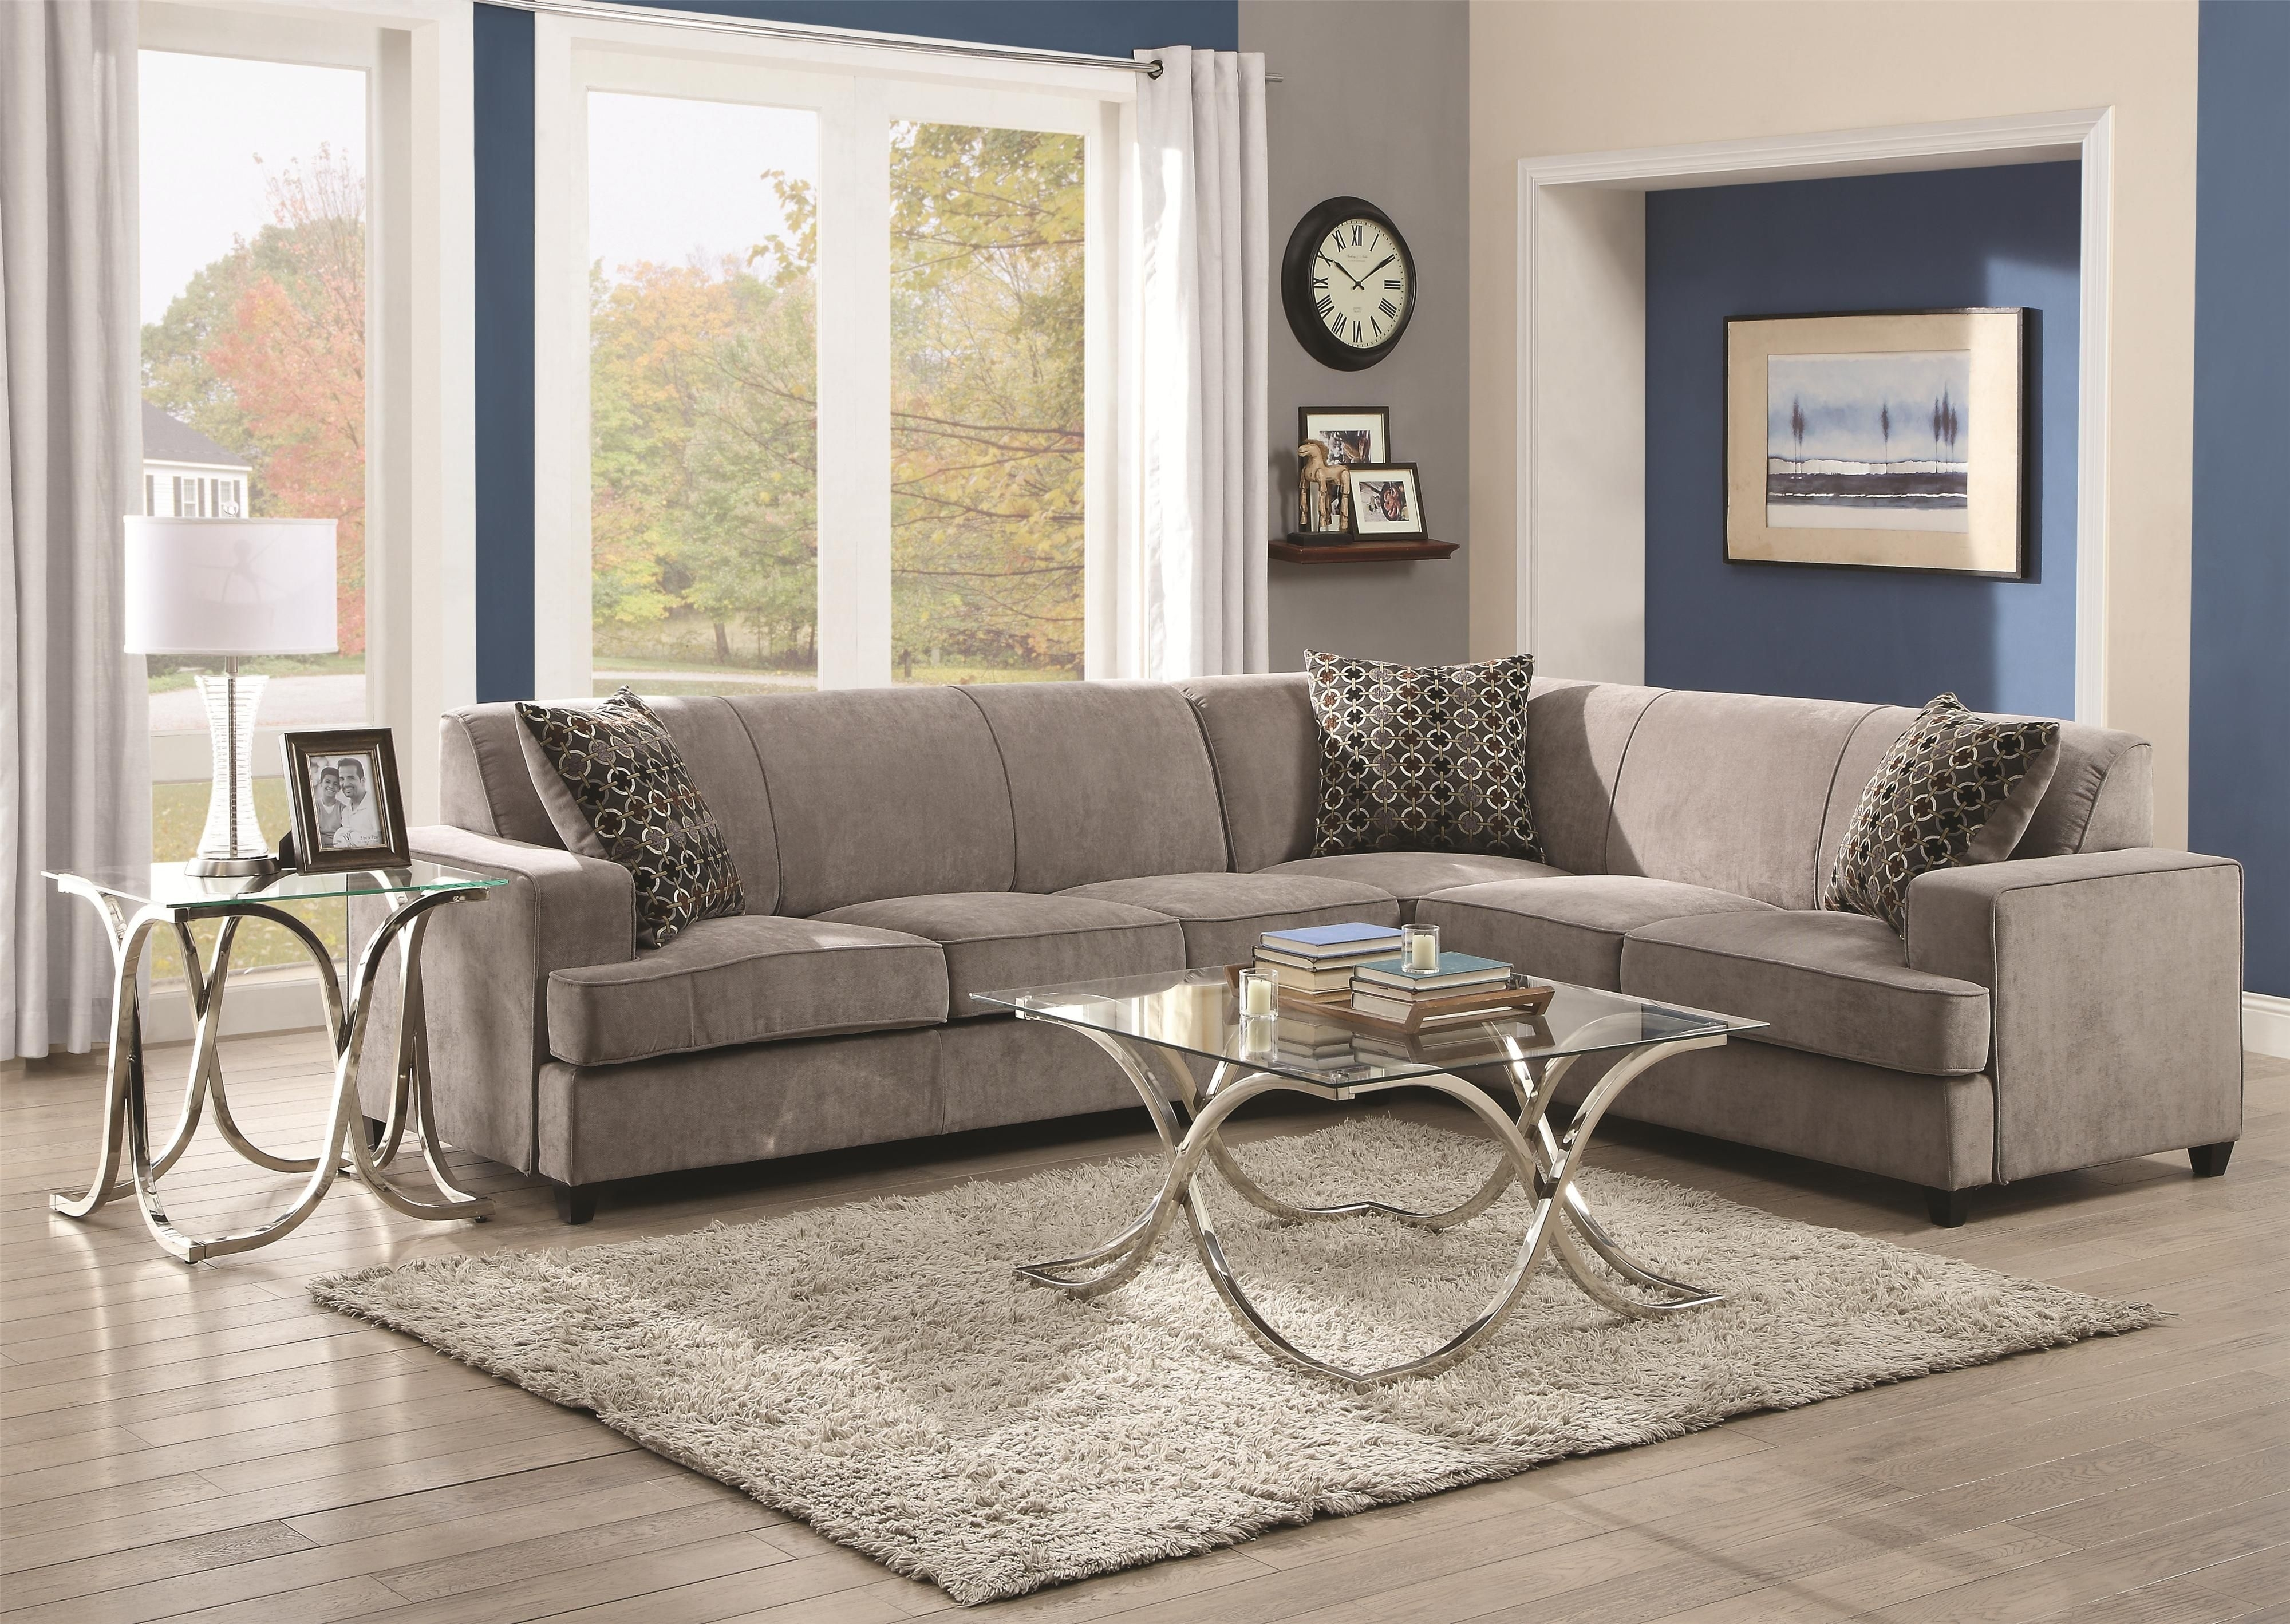 Tess Sectional Sofa For Cornerscoaster | Shades Of Grey with regard to Tess 2 Piece Power Reclining Sectionals With Laf Chaise (Image 29 of 30)